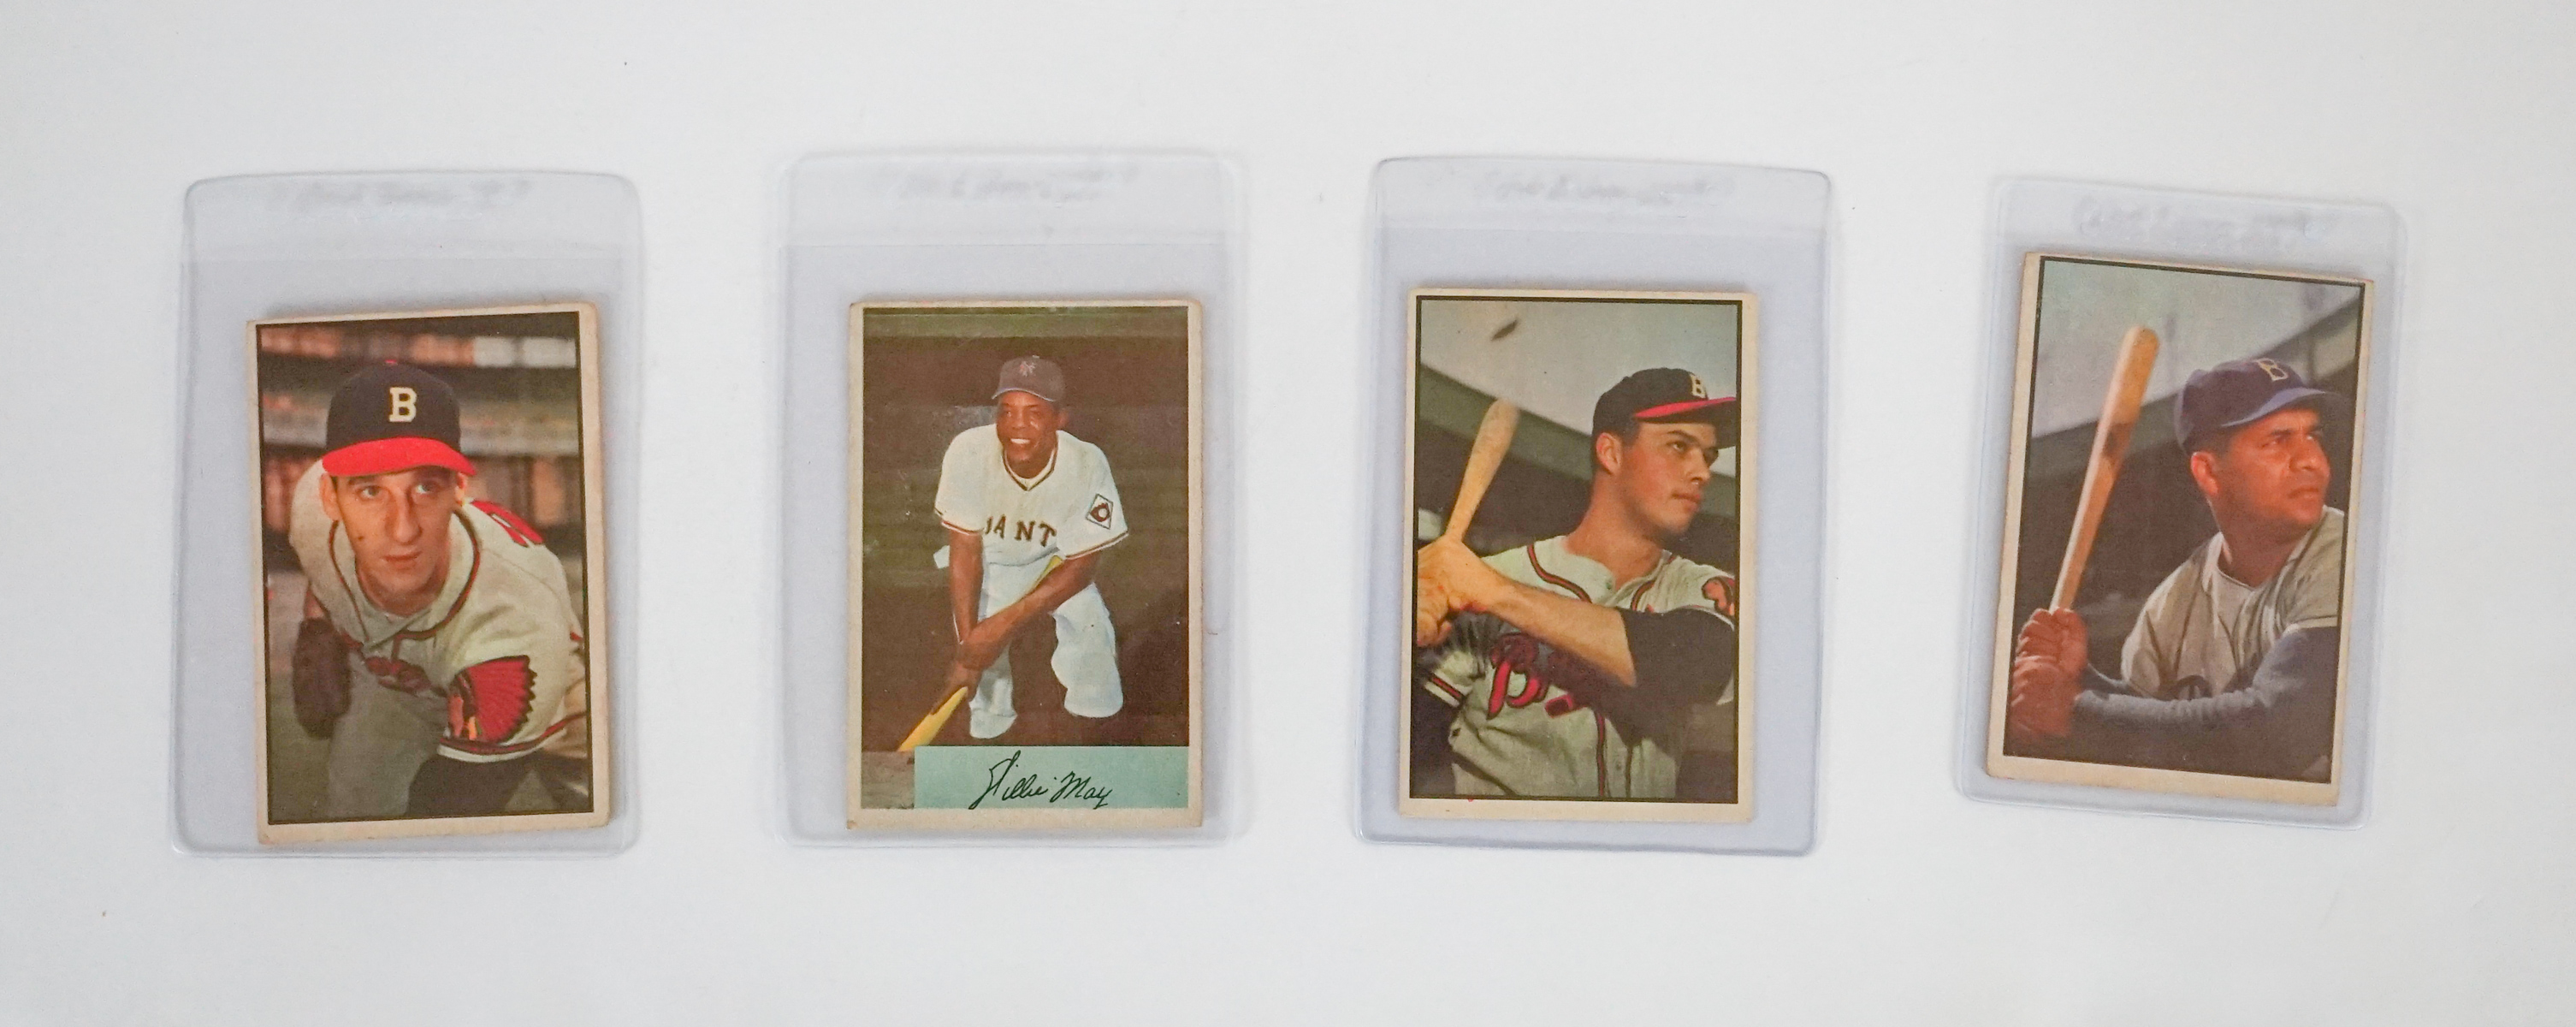 102 1950s Bowman Baseball Cards